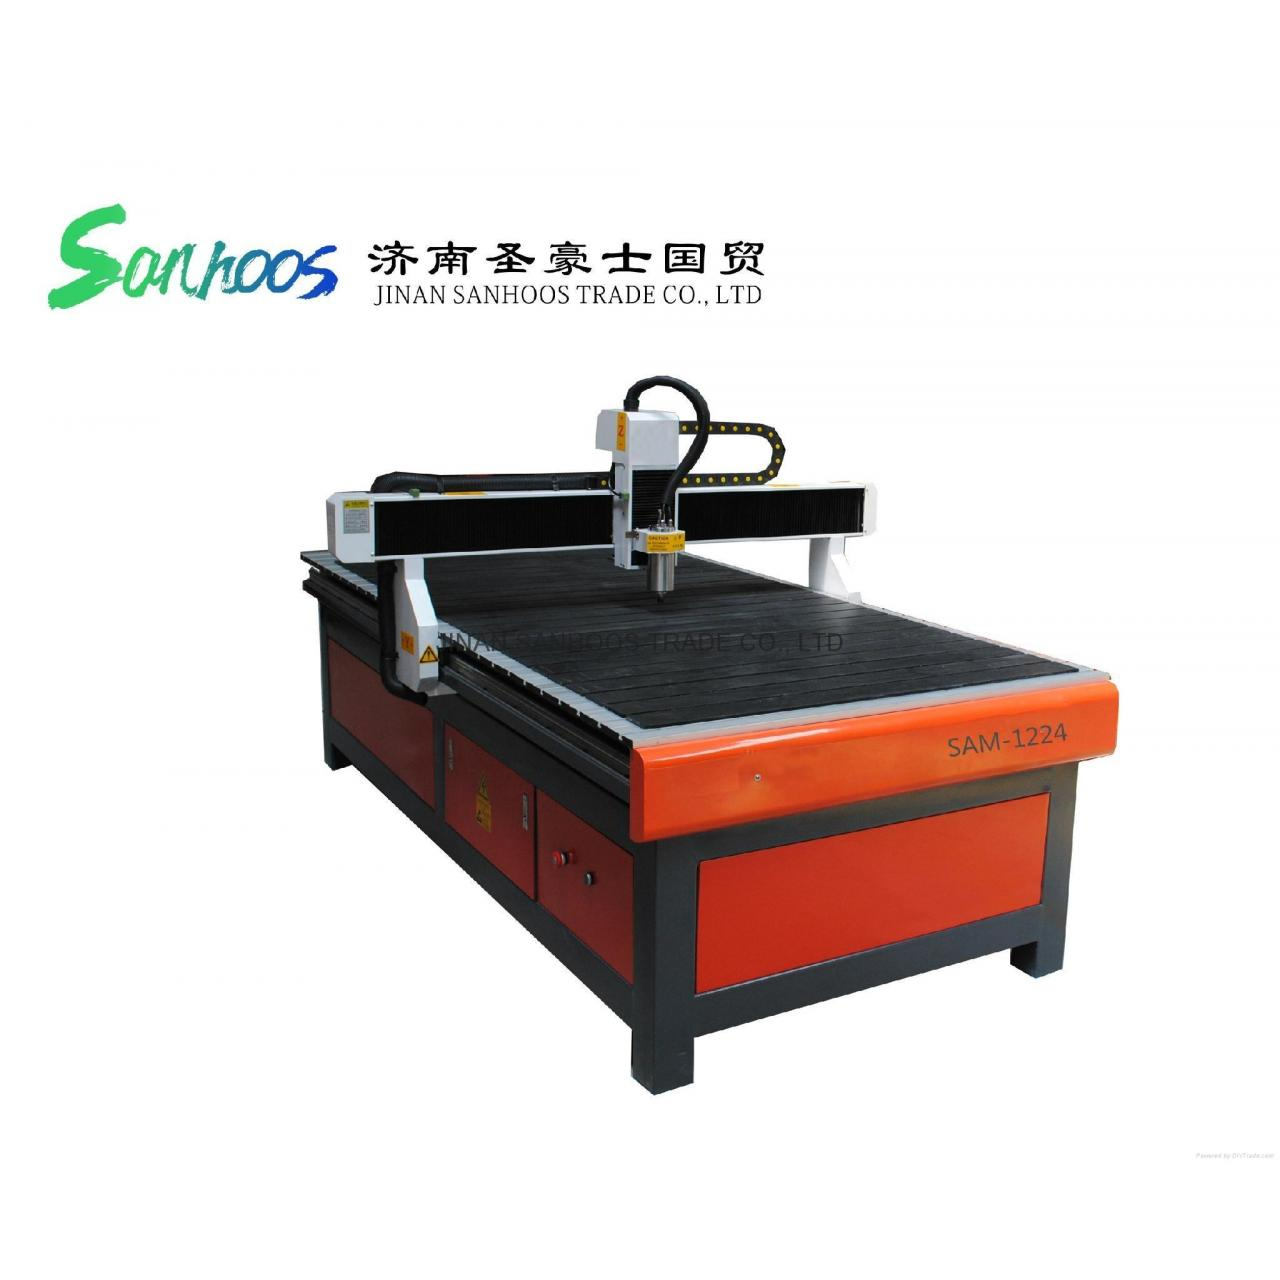 Quality Sam Ball Screw CNC Router Machine SAM-1224 for sale